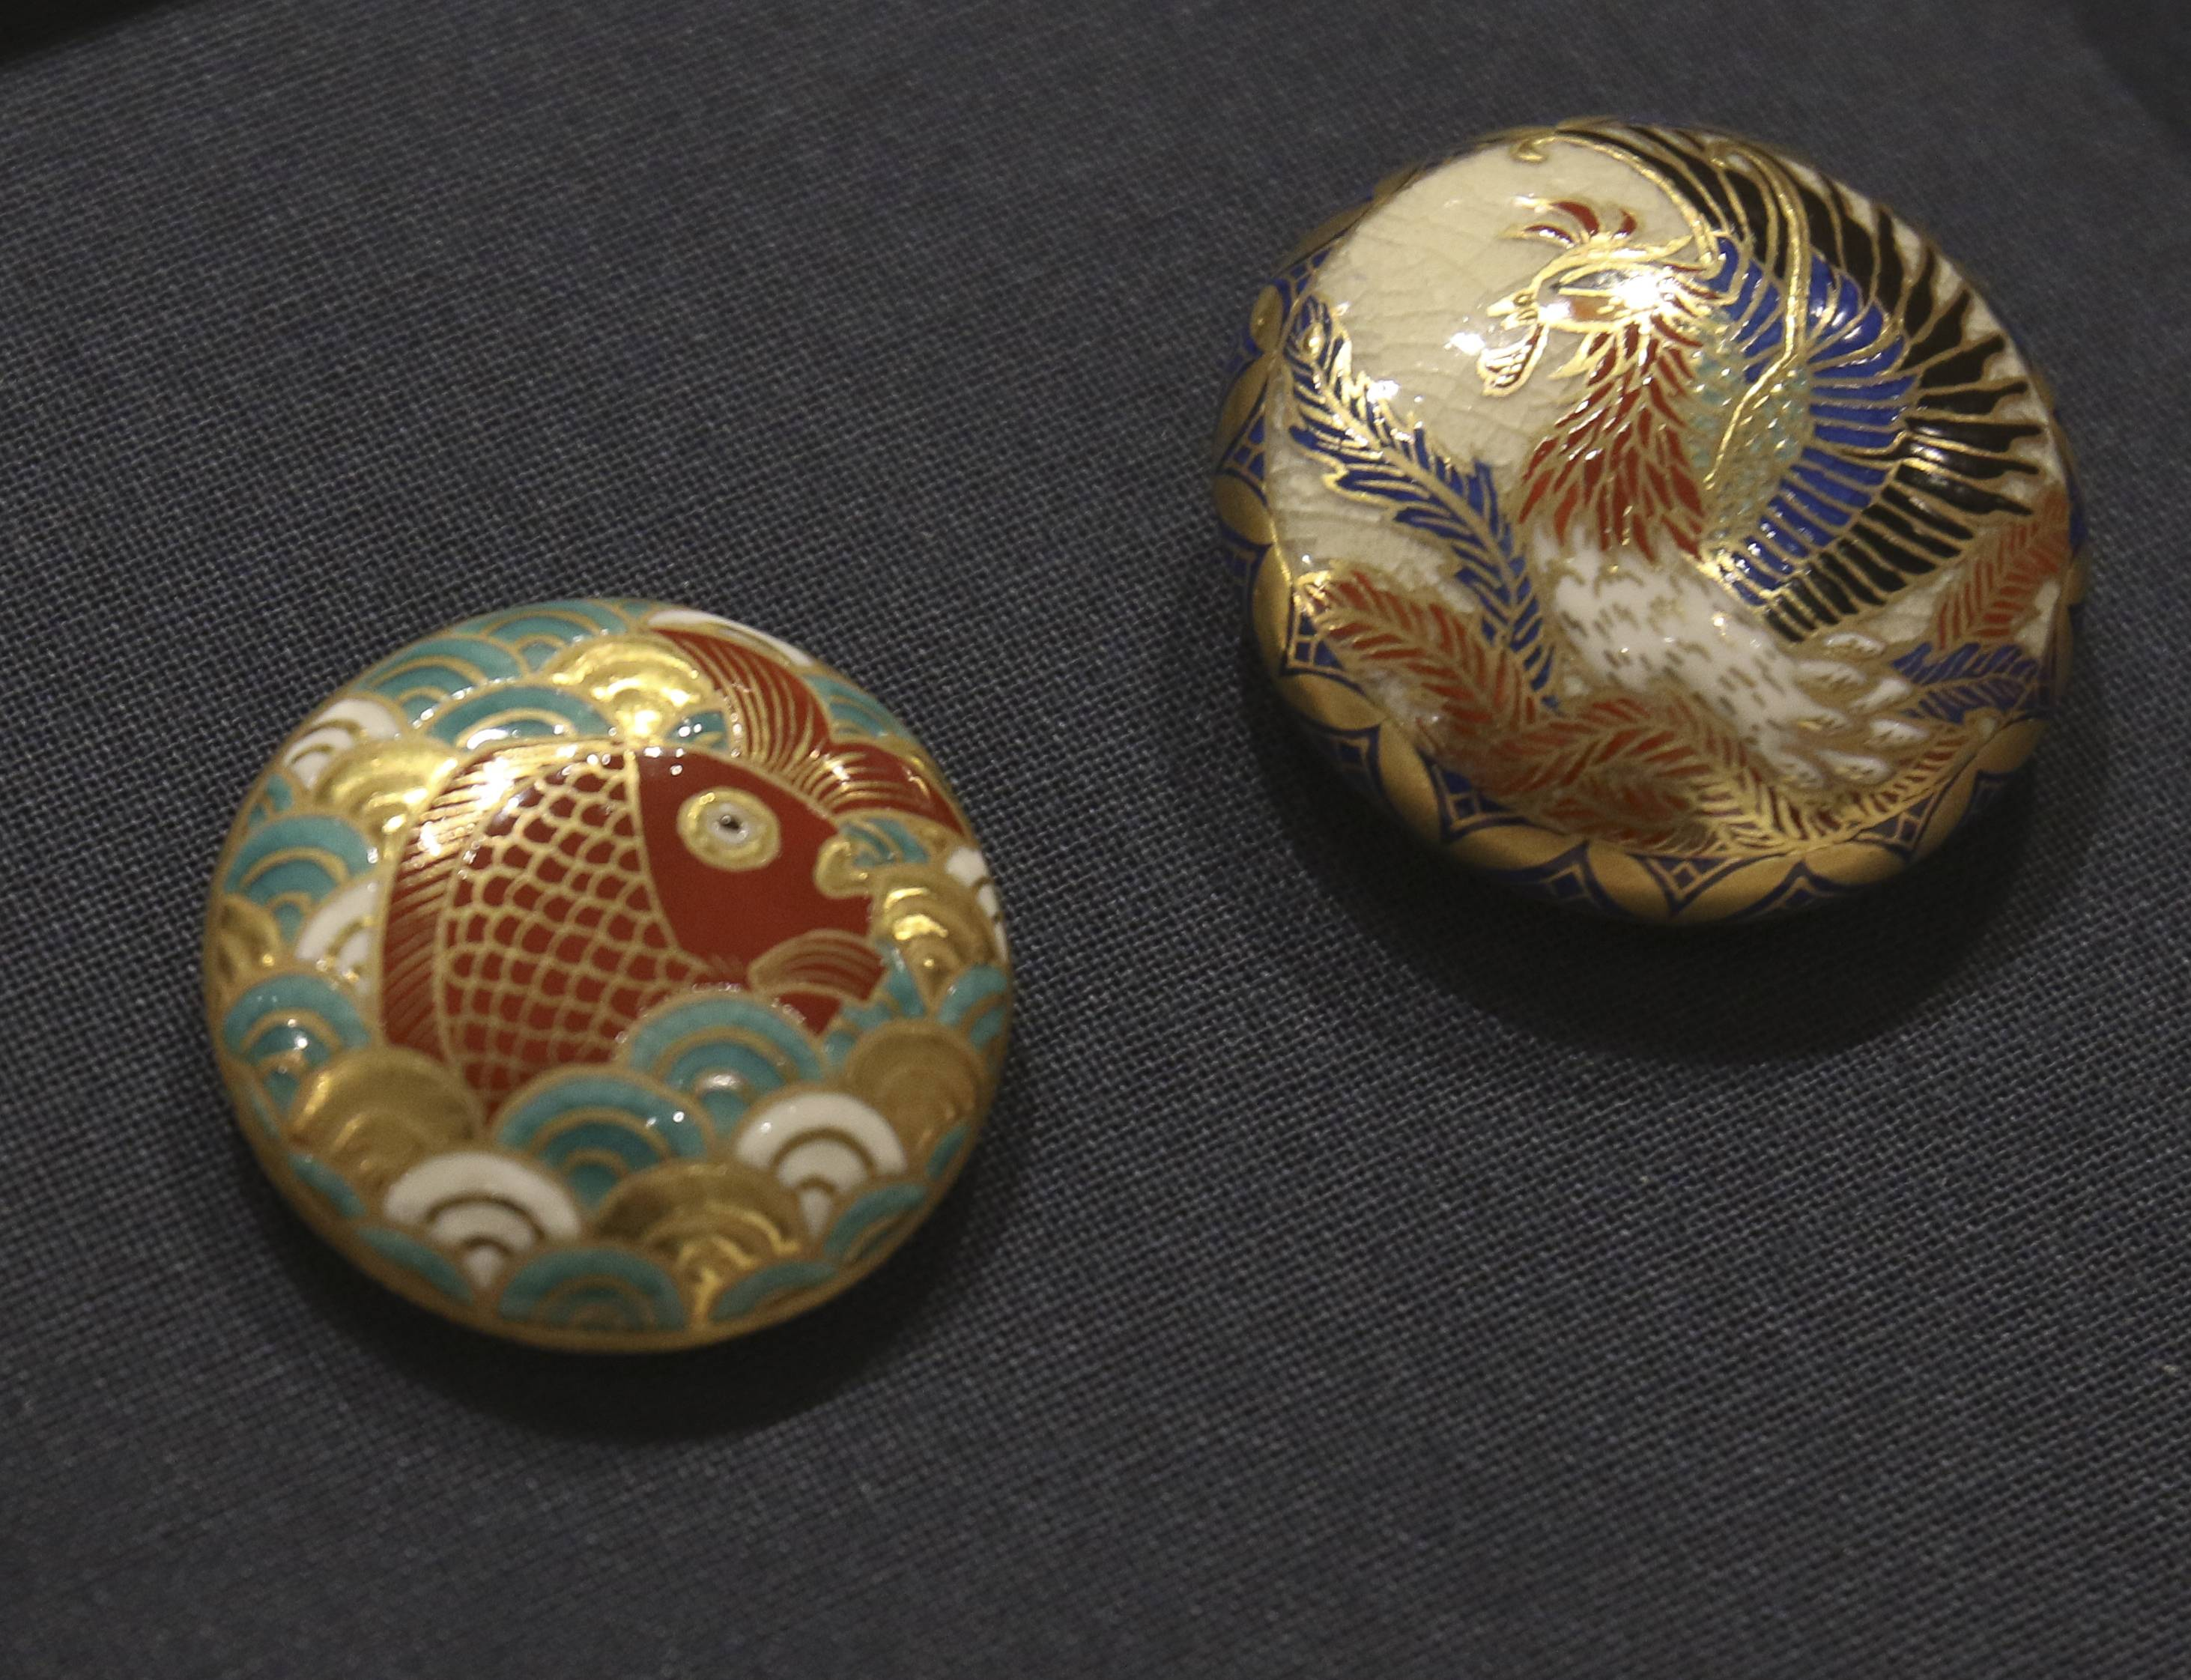 Ceramic buttons from Kagoshima are among Japanese items to be displayed at a cultural event Feb. 12 hosted by Motoko Izumi of Artezanato Studio in downtown Naperville.